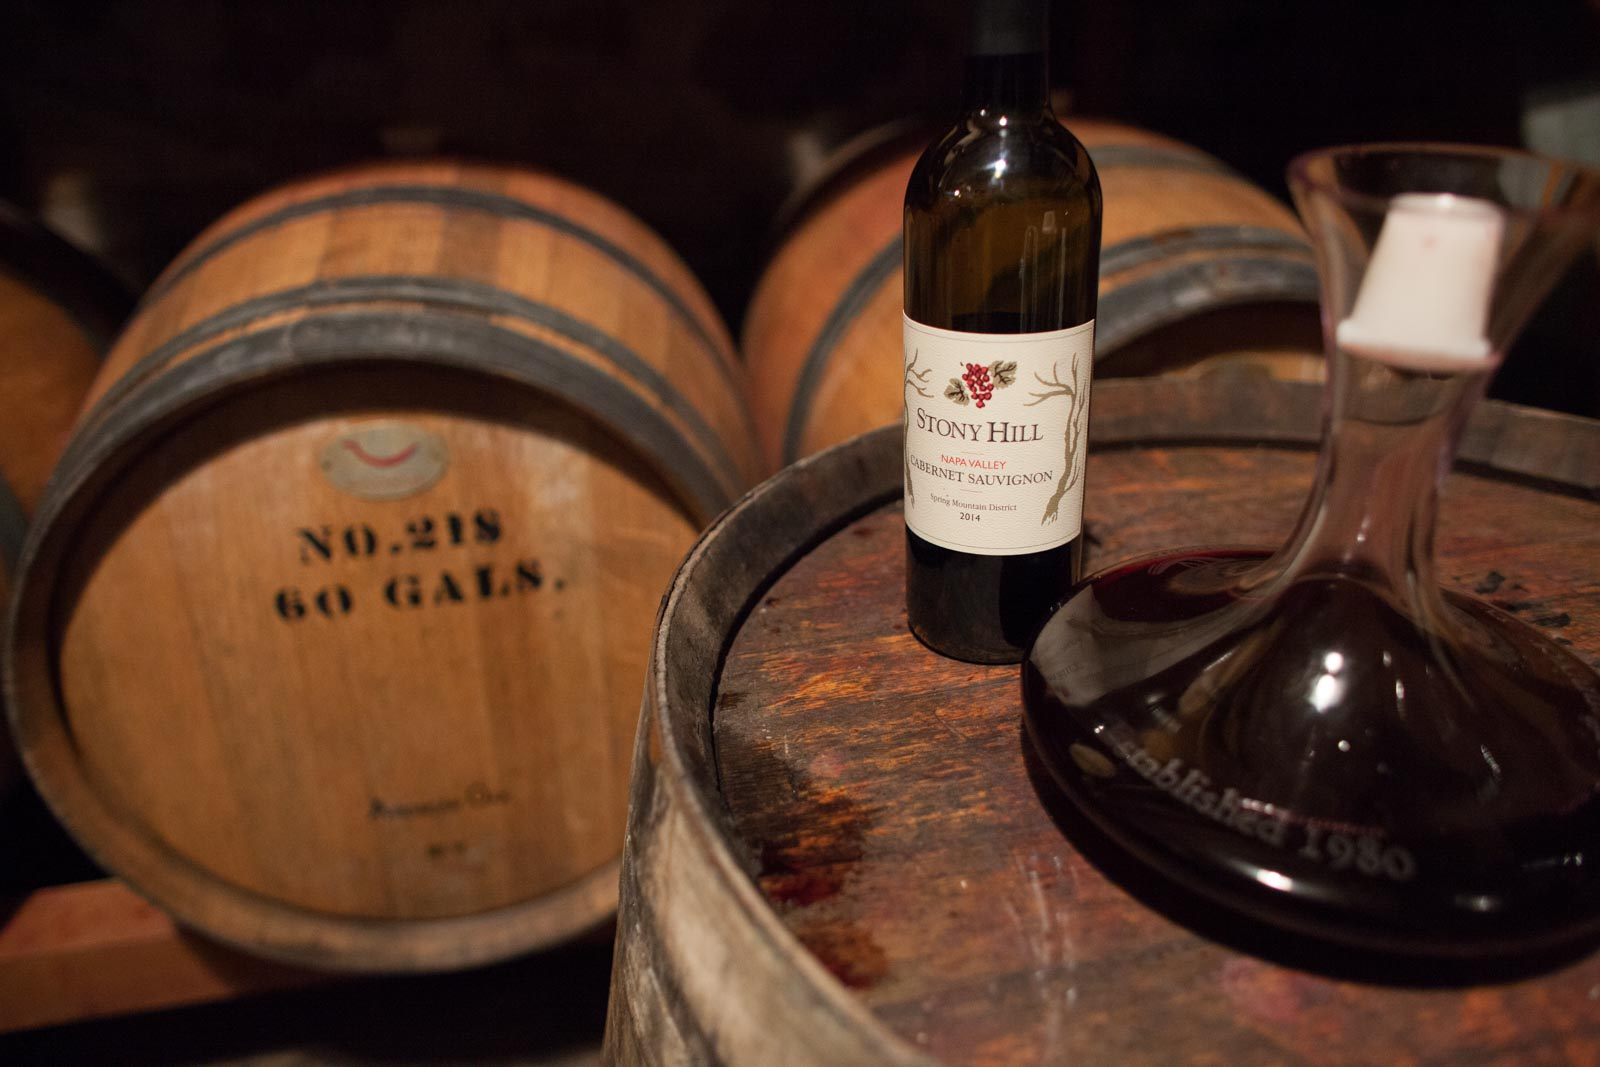 Amongst the barrels at Stony Hill Vineyards, with a bottle of 2014 Cabernet Sauvignon while the 2016 vintage ages beside it. ©Kevin Day / Opening a Bottle